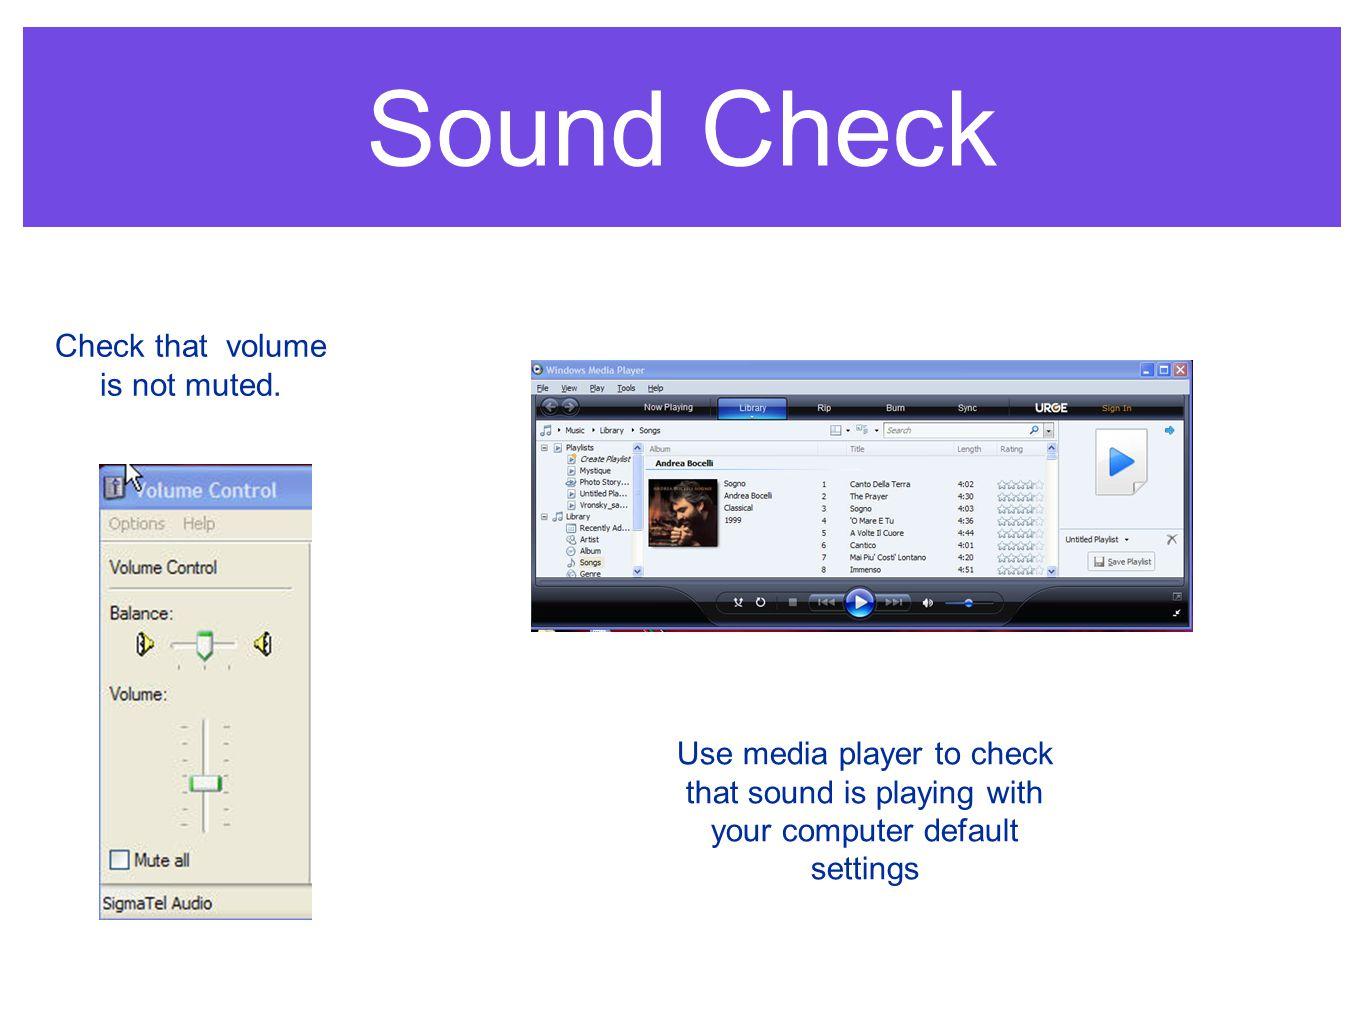 Sound Check Check that volume is not muted.